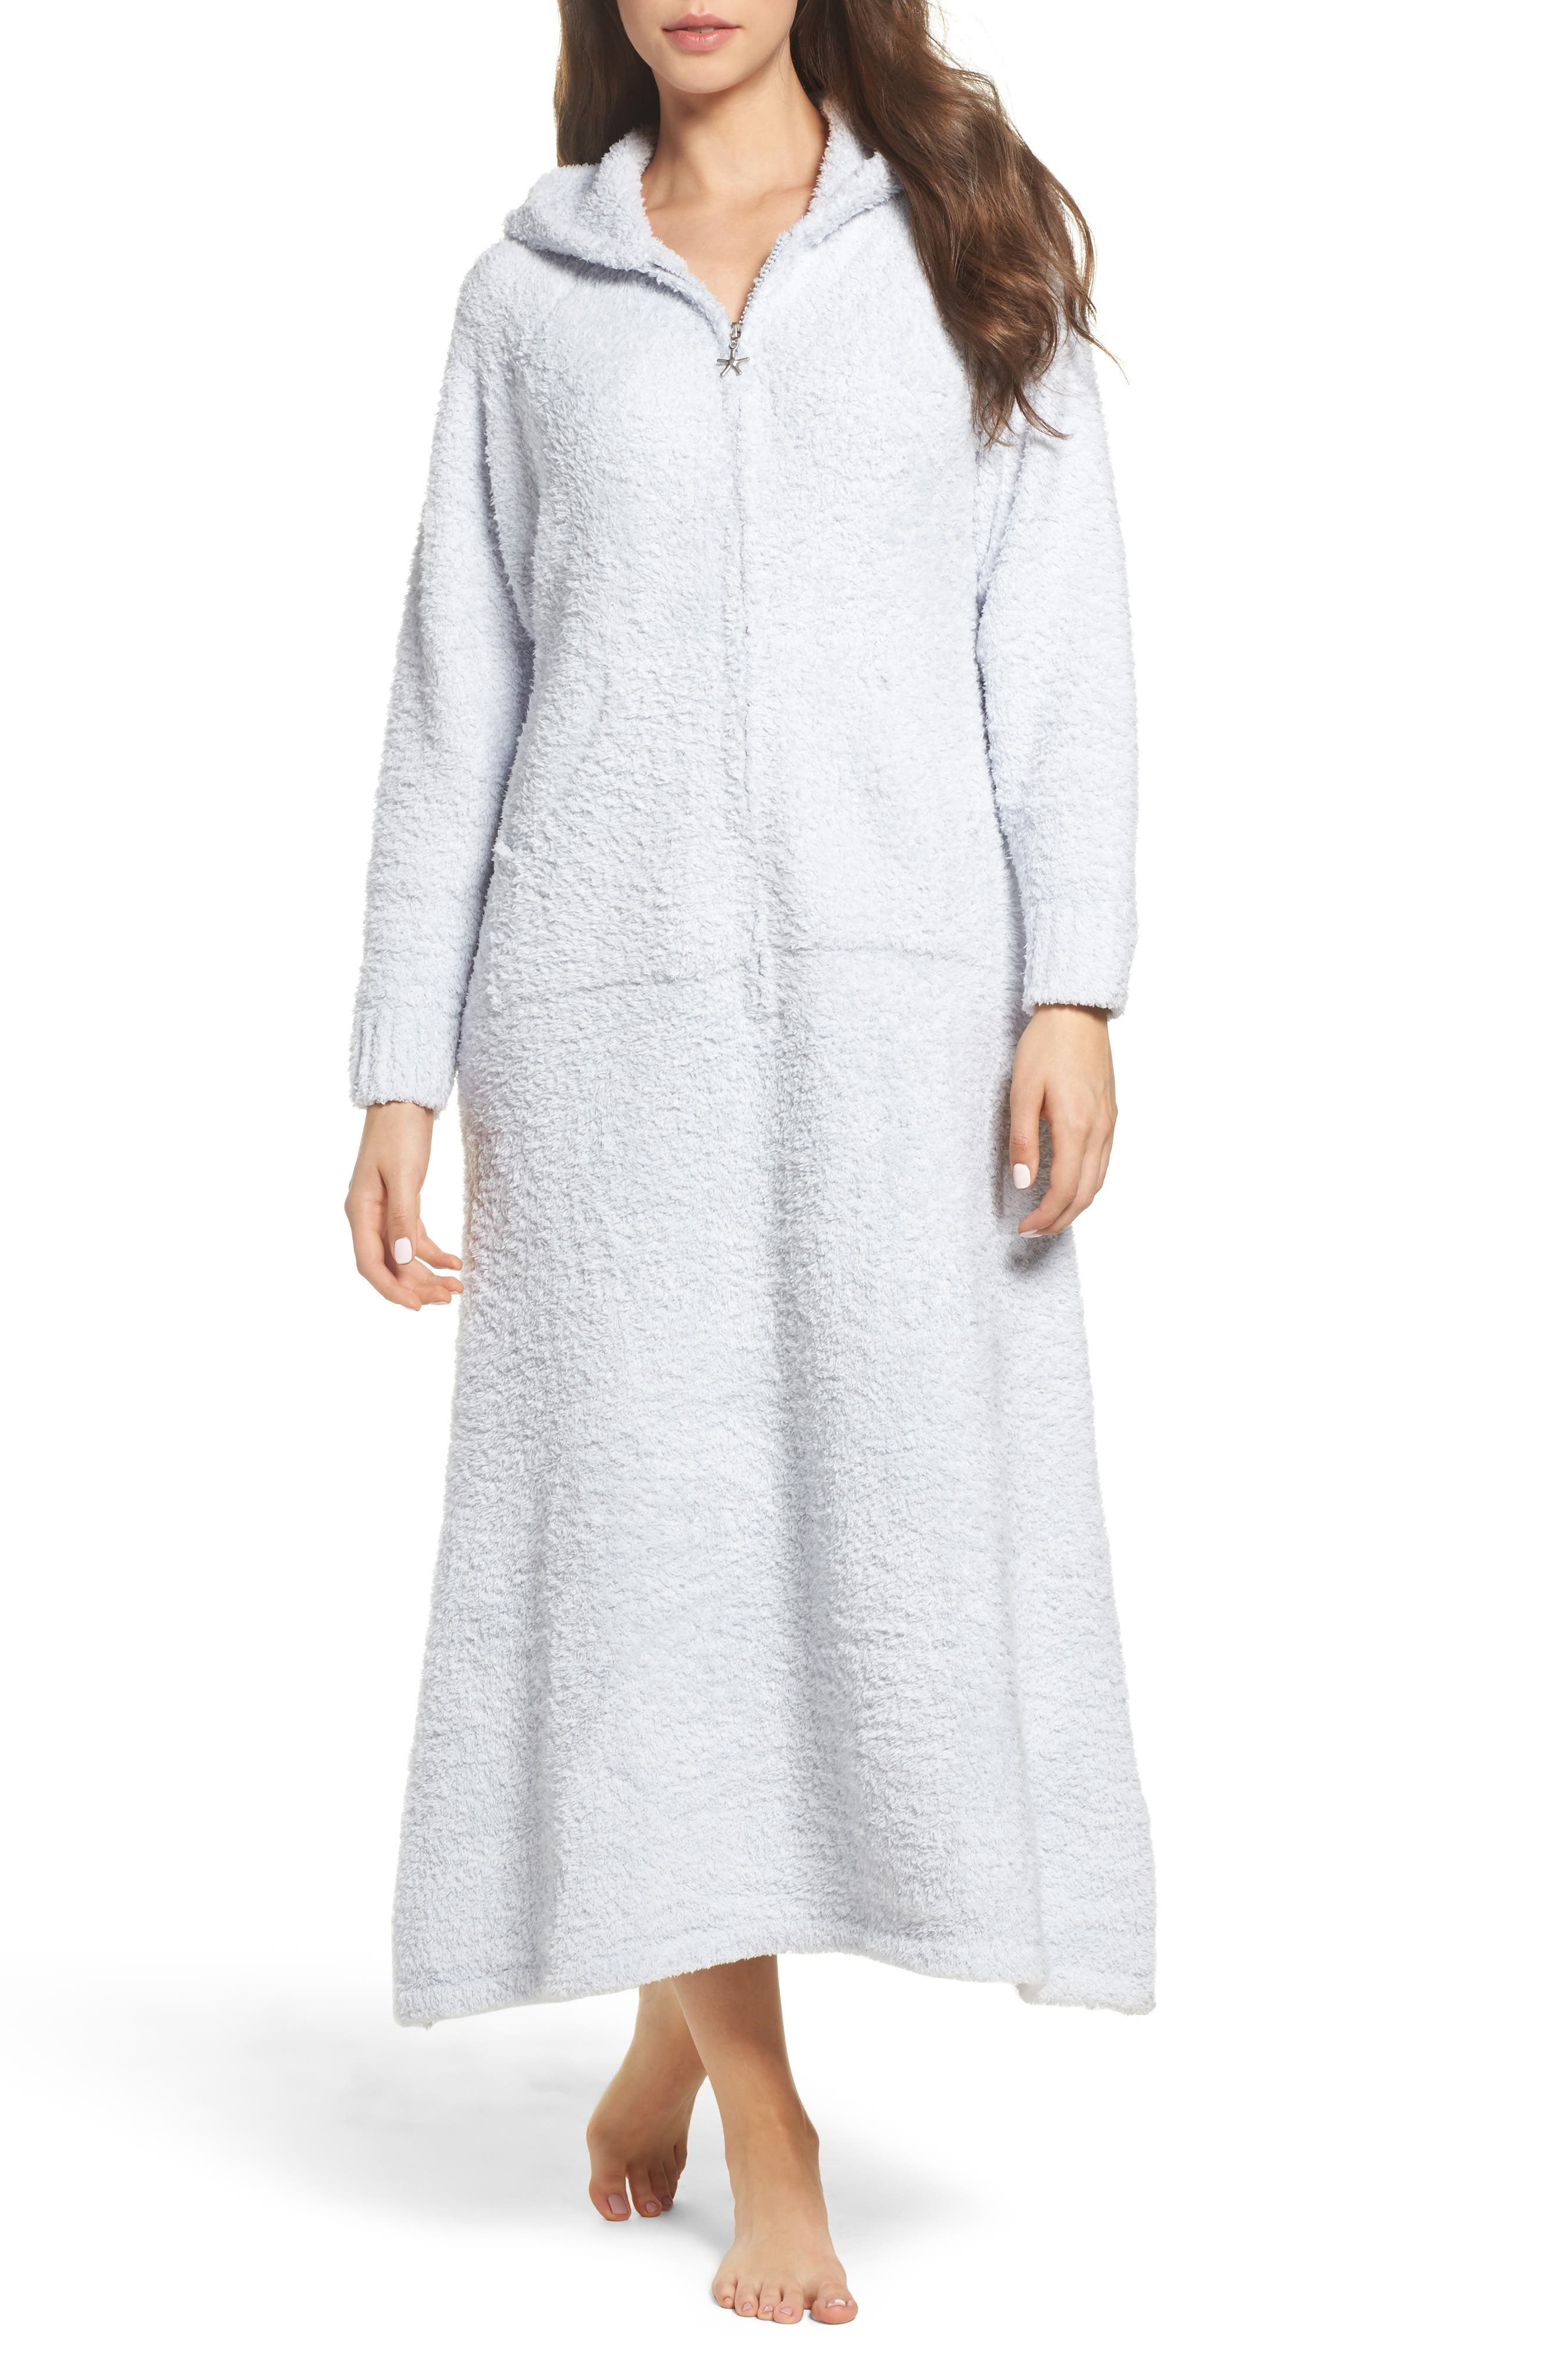 CozyChic<sup>®</sup> Hooded Zip Robe,                             Main thumbnail 1, color,                             BLUE